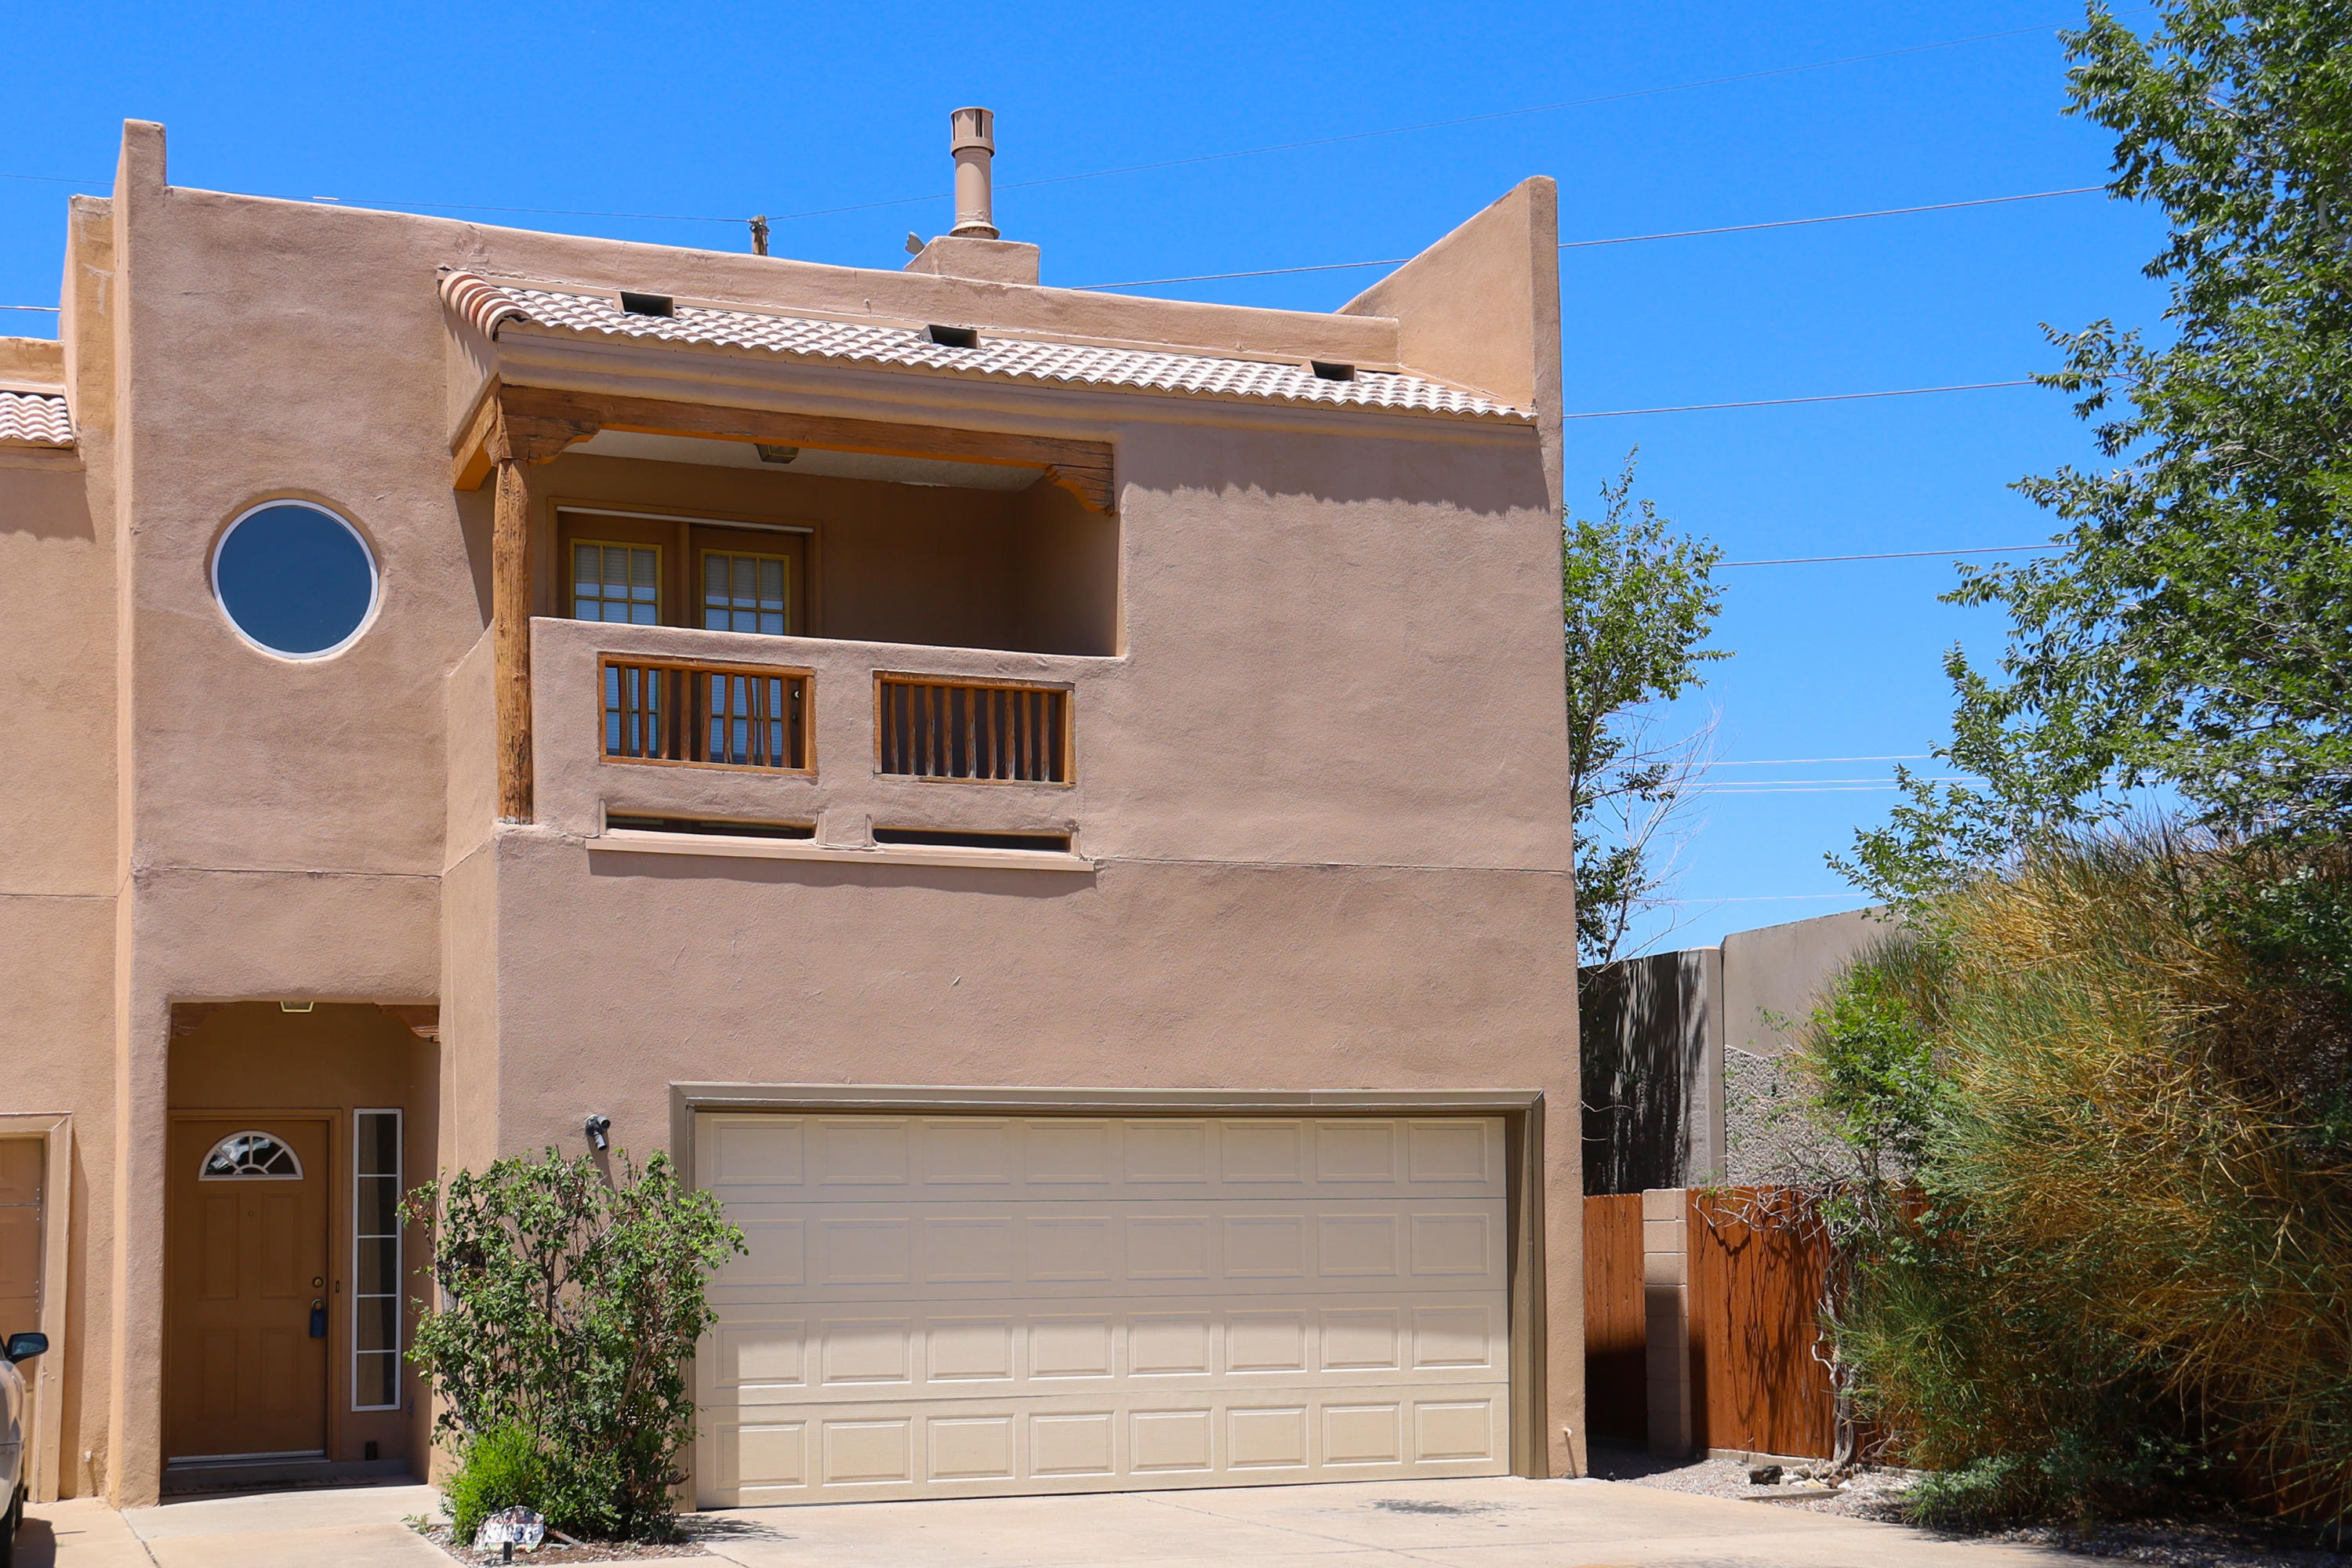 Immaculate 3BR within easy driving distance to UNM.  Open floor plan with spacious great room and cozy fireplace. Spacious master bedroom features private balcony and fireplace...truly fit for royalty! Kitchen offers plenty of work space and plenty of cabinets...even the pickiest chef will be happy! New carpet, fresh paint..ready to go!